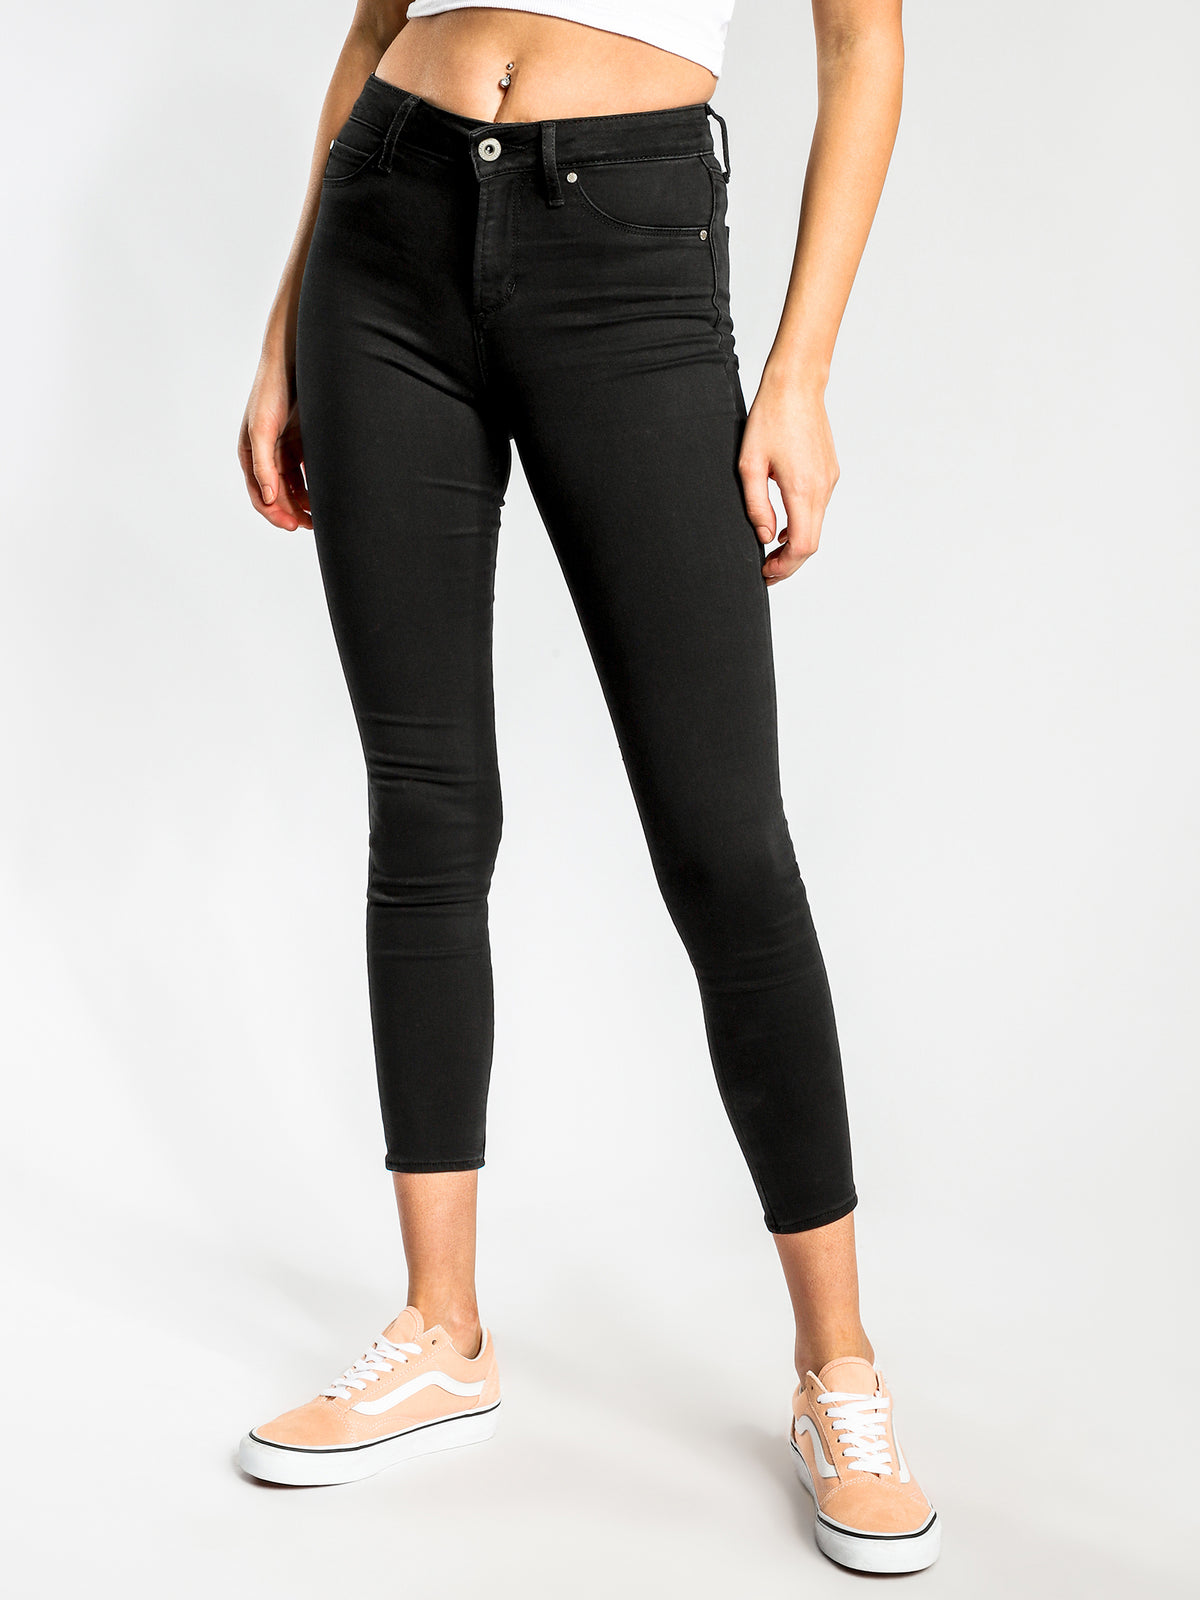 Cisco High-Rise Super-Skinny Jeans in Black-Out Denim